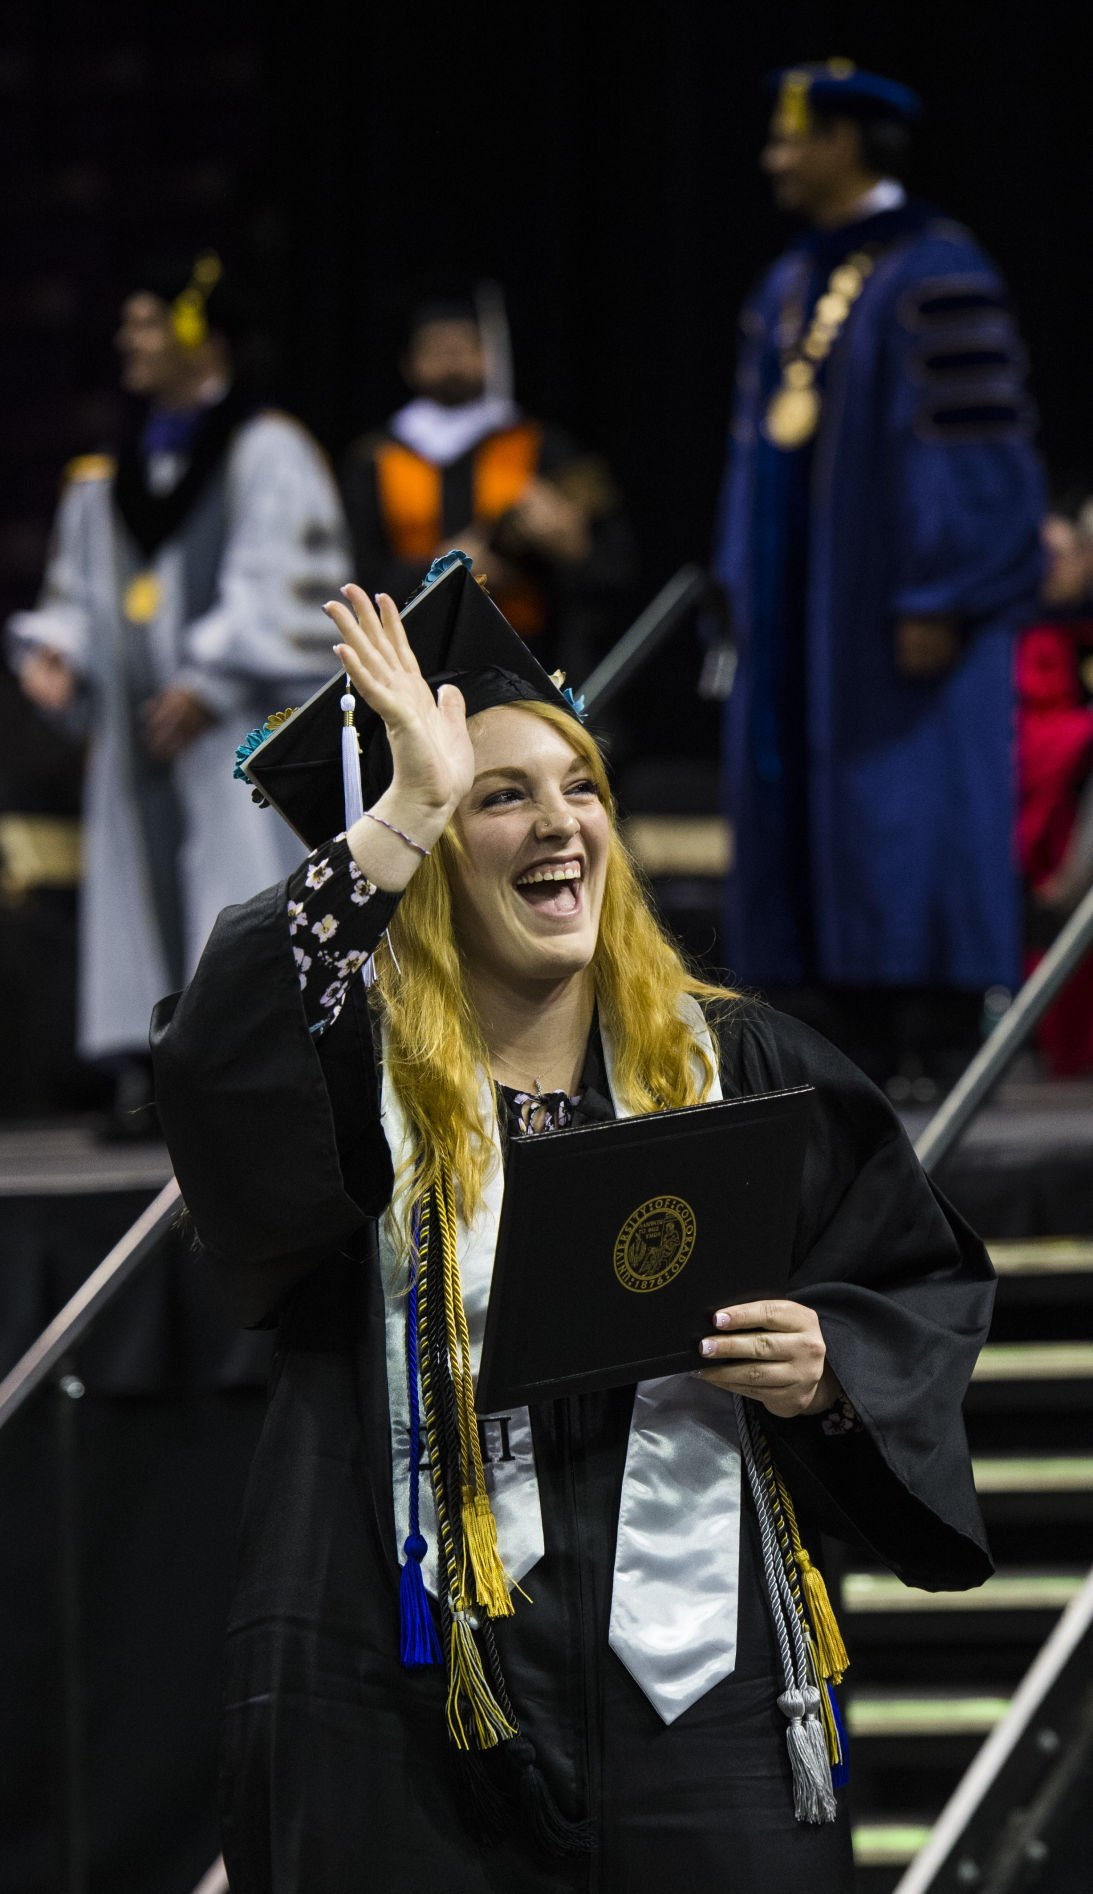 Katelyn Huddleston waves to her family after receiving her diploma during the University of Colorado at Colorado Springs' morning commencement ceremonies Friday, May 12, 2017, at the Broadmoor World Arena in Colorado Springs. A record 1,532 students received their degrees this Spring.  (The Gazette, Christian Murdock)